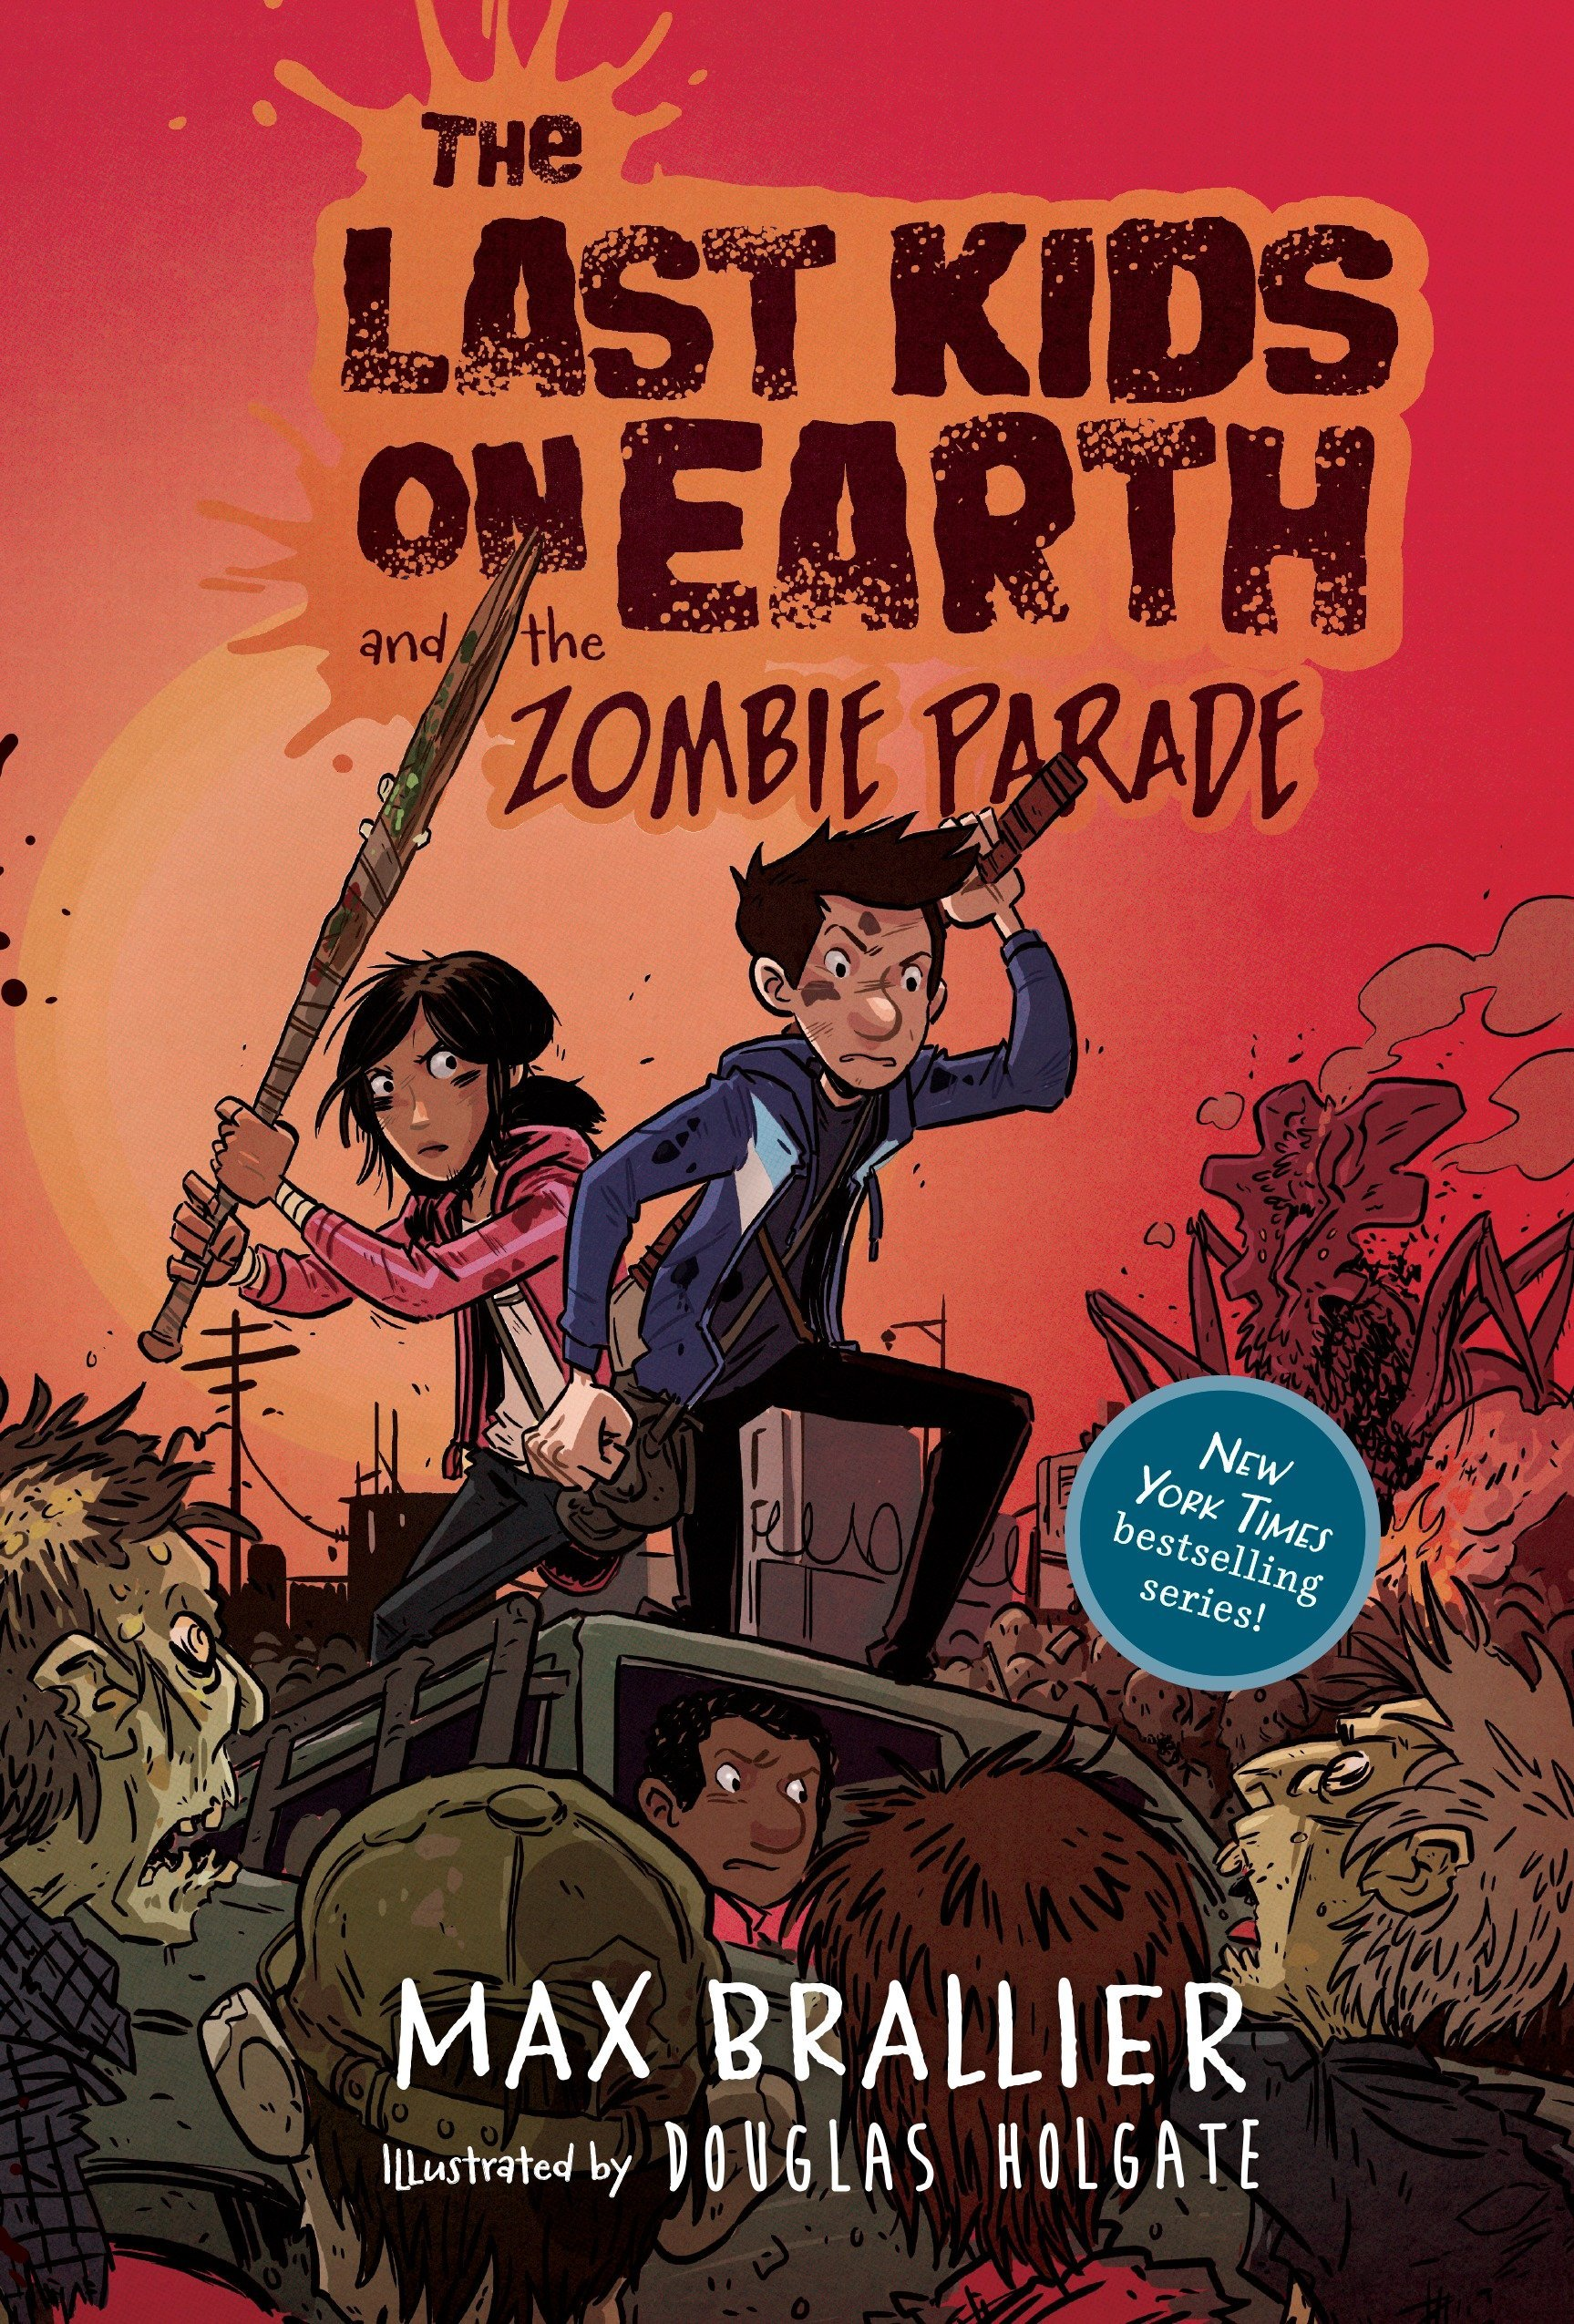 brallier-last-kids-earth-zombie.jpg